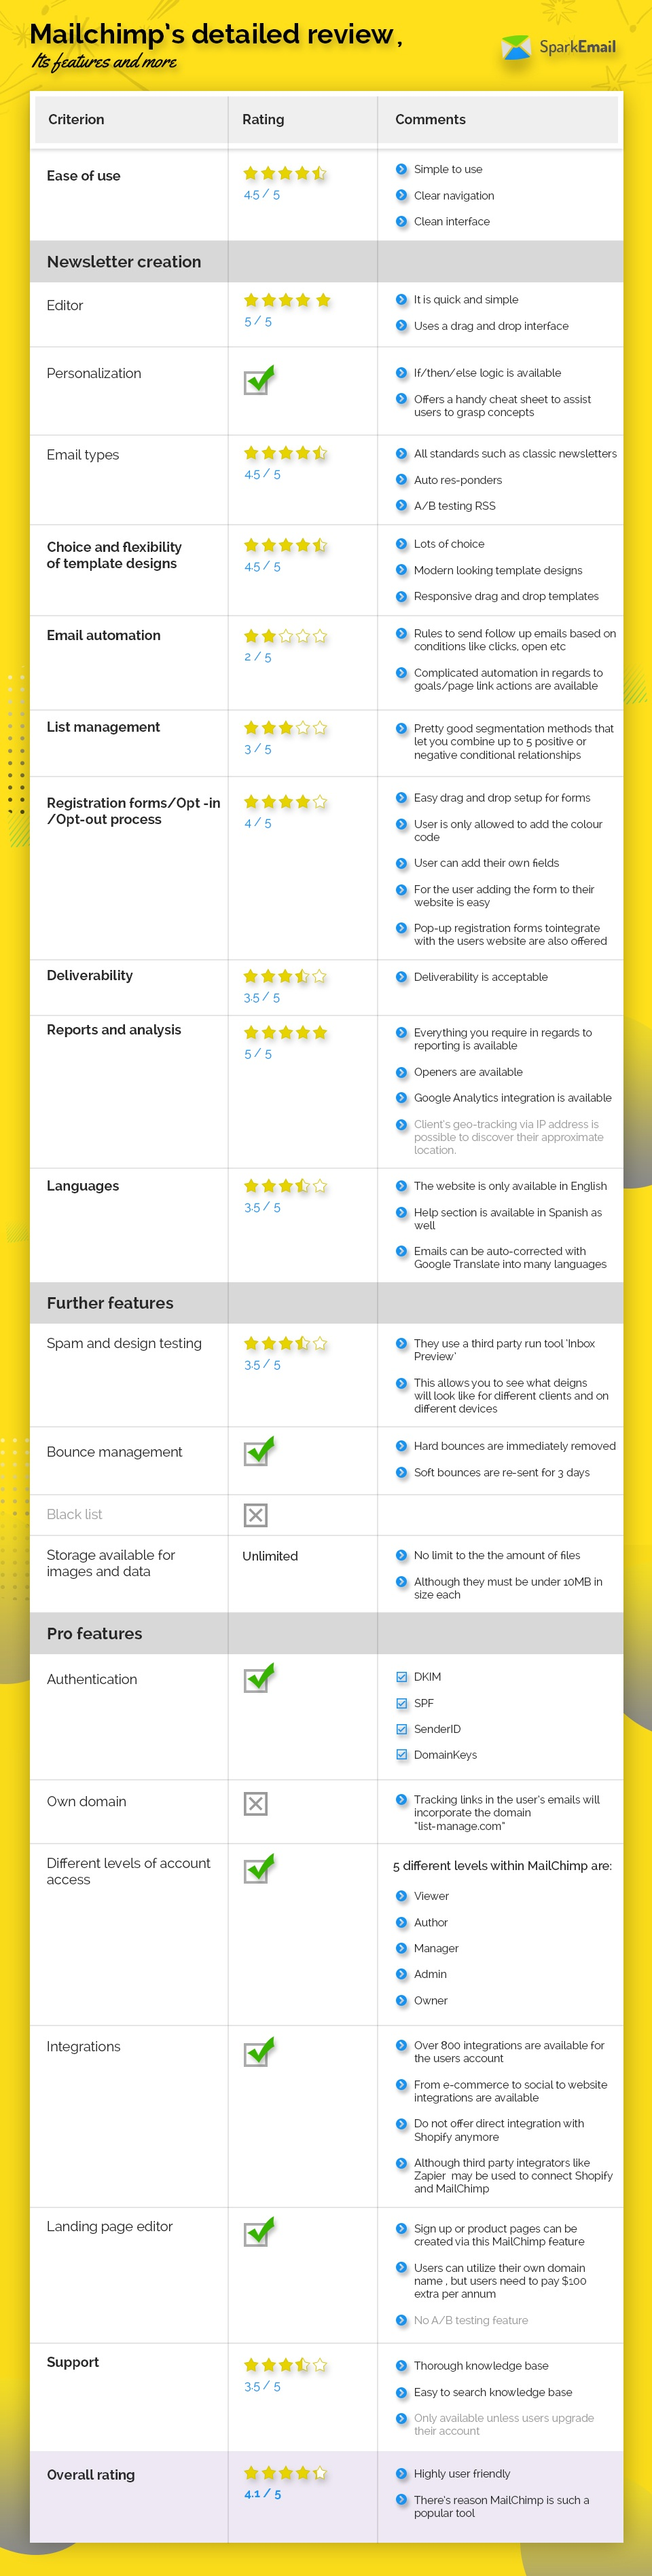 Mailchimp_detailed_reviews